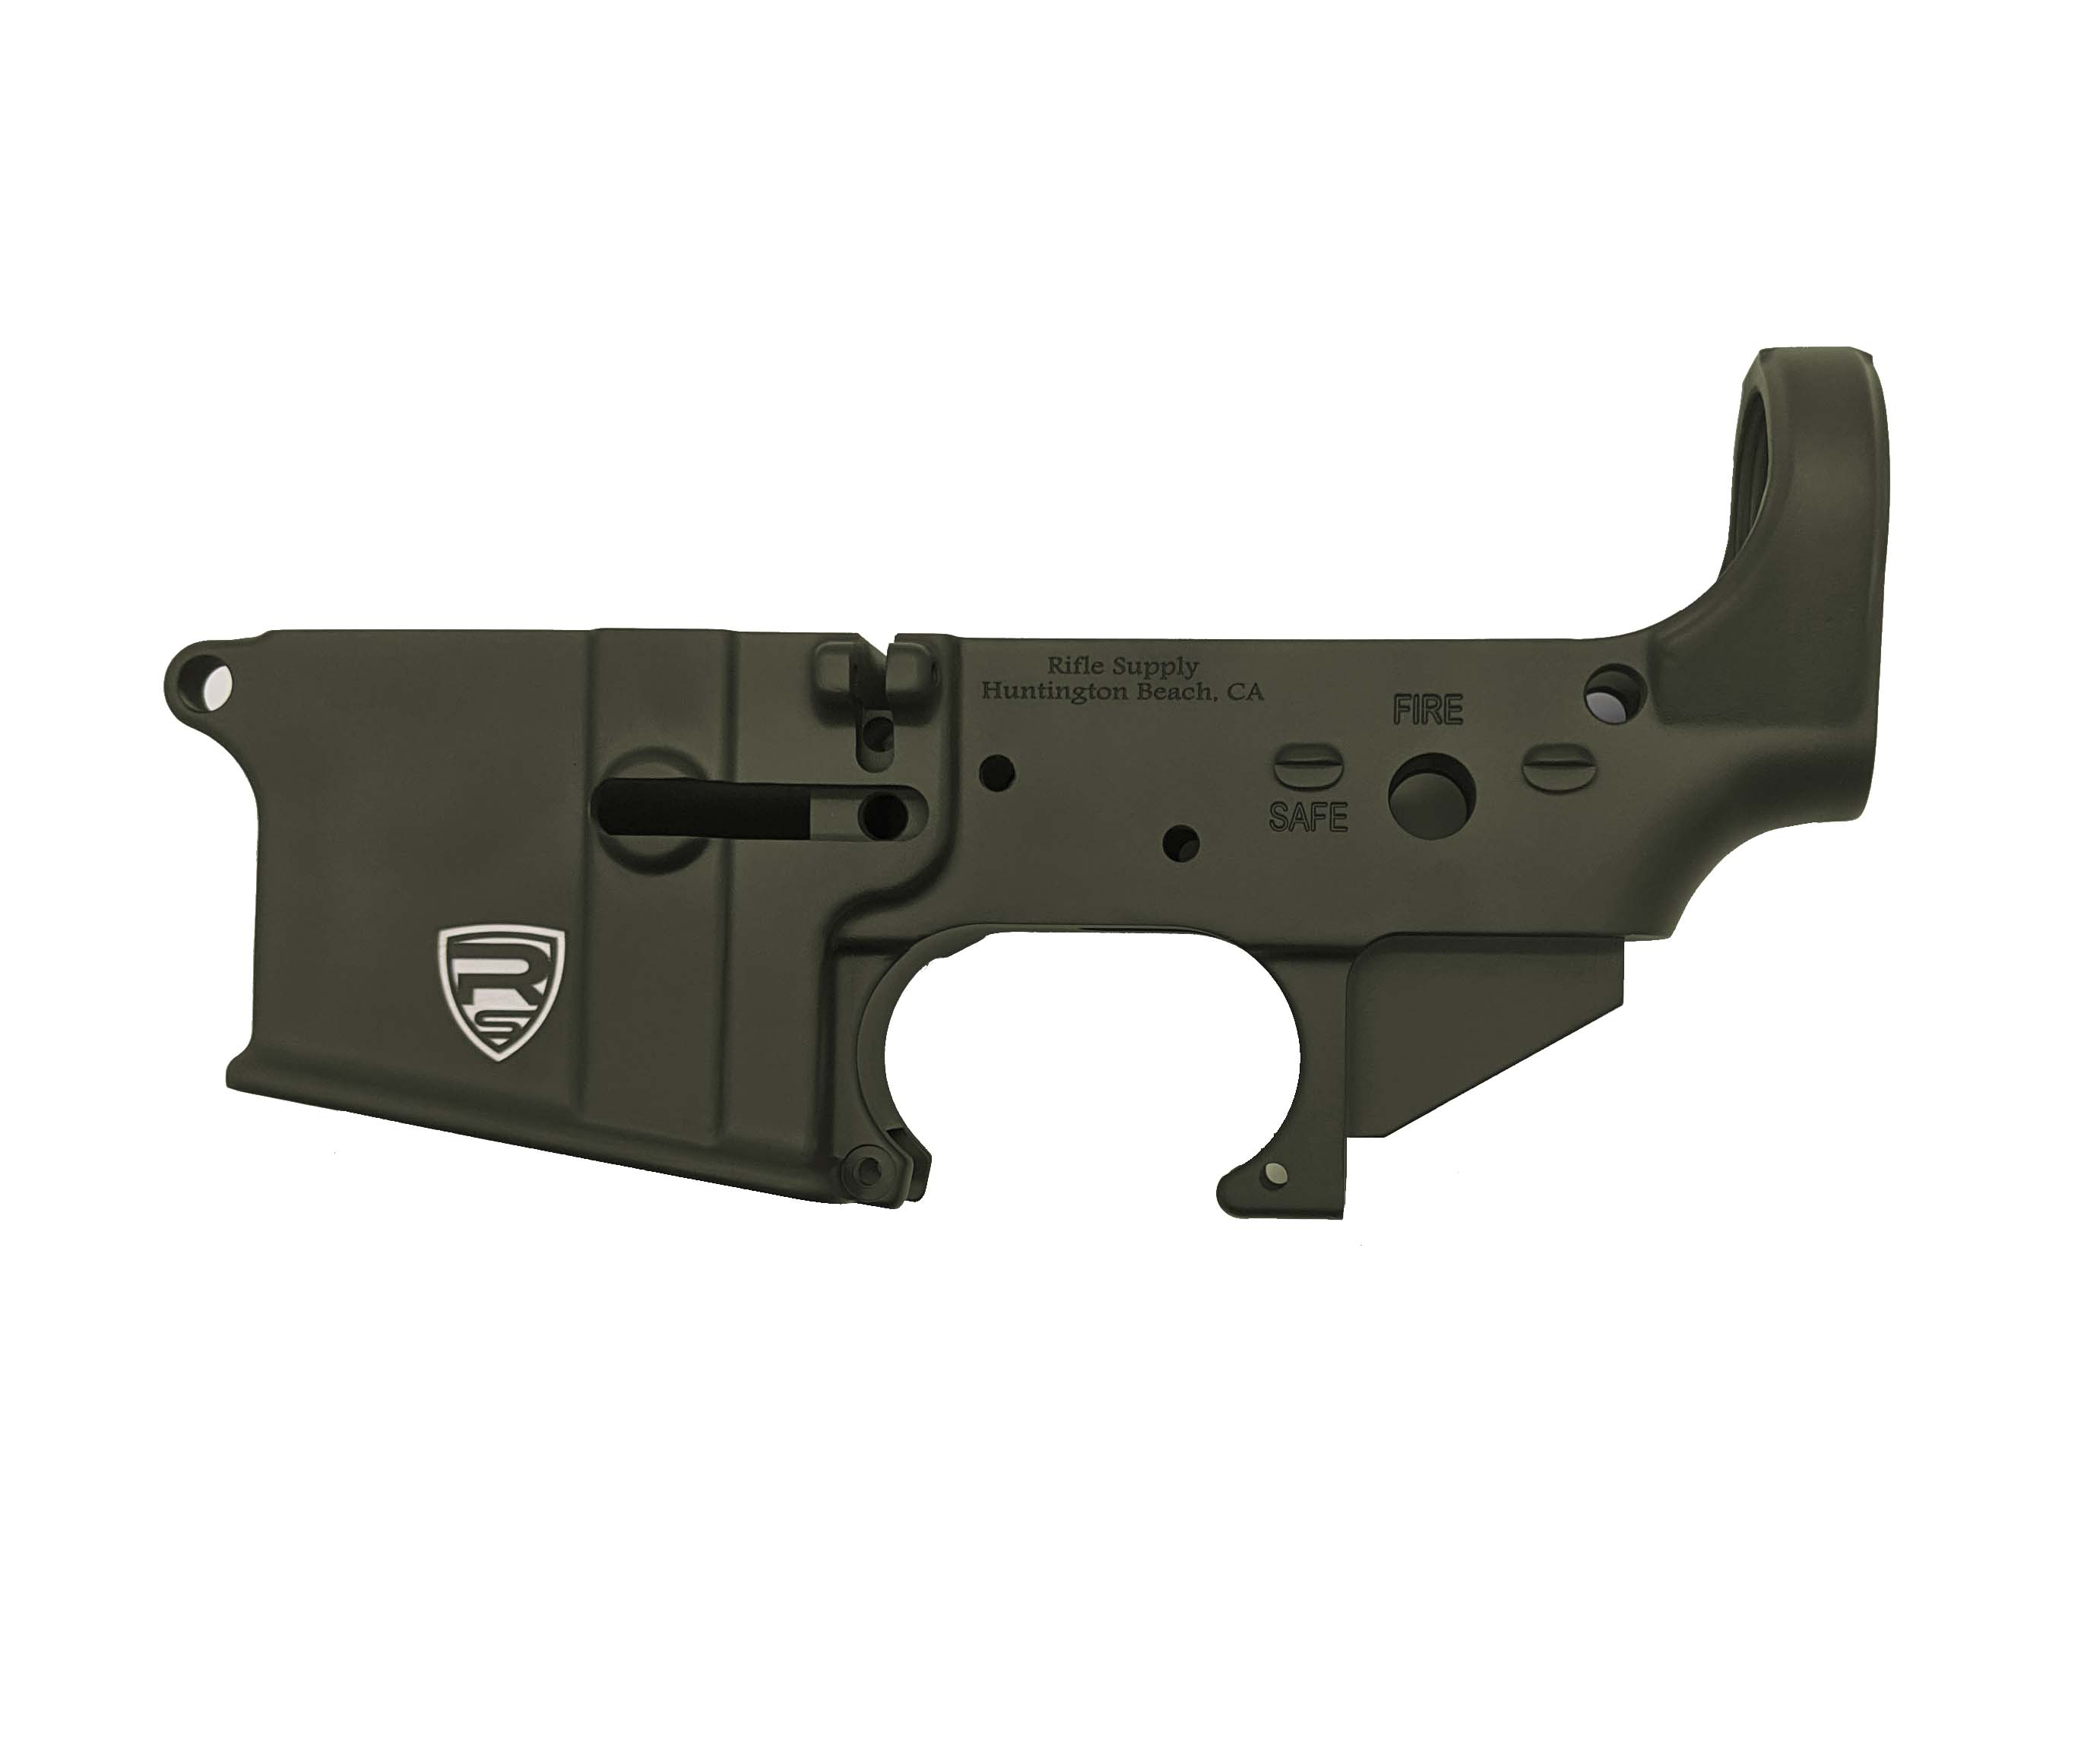 Rifle Supply Stripped Lower Receiver | ODG Cerakote | Small Crest